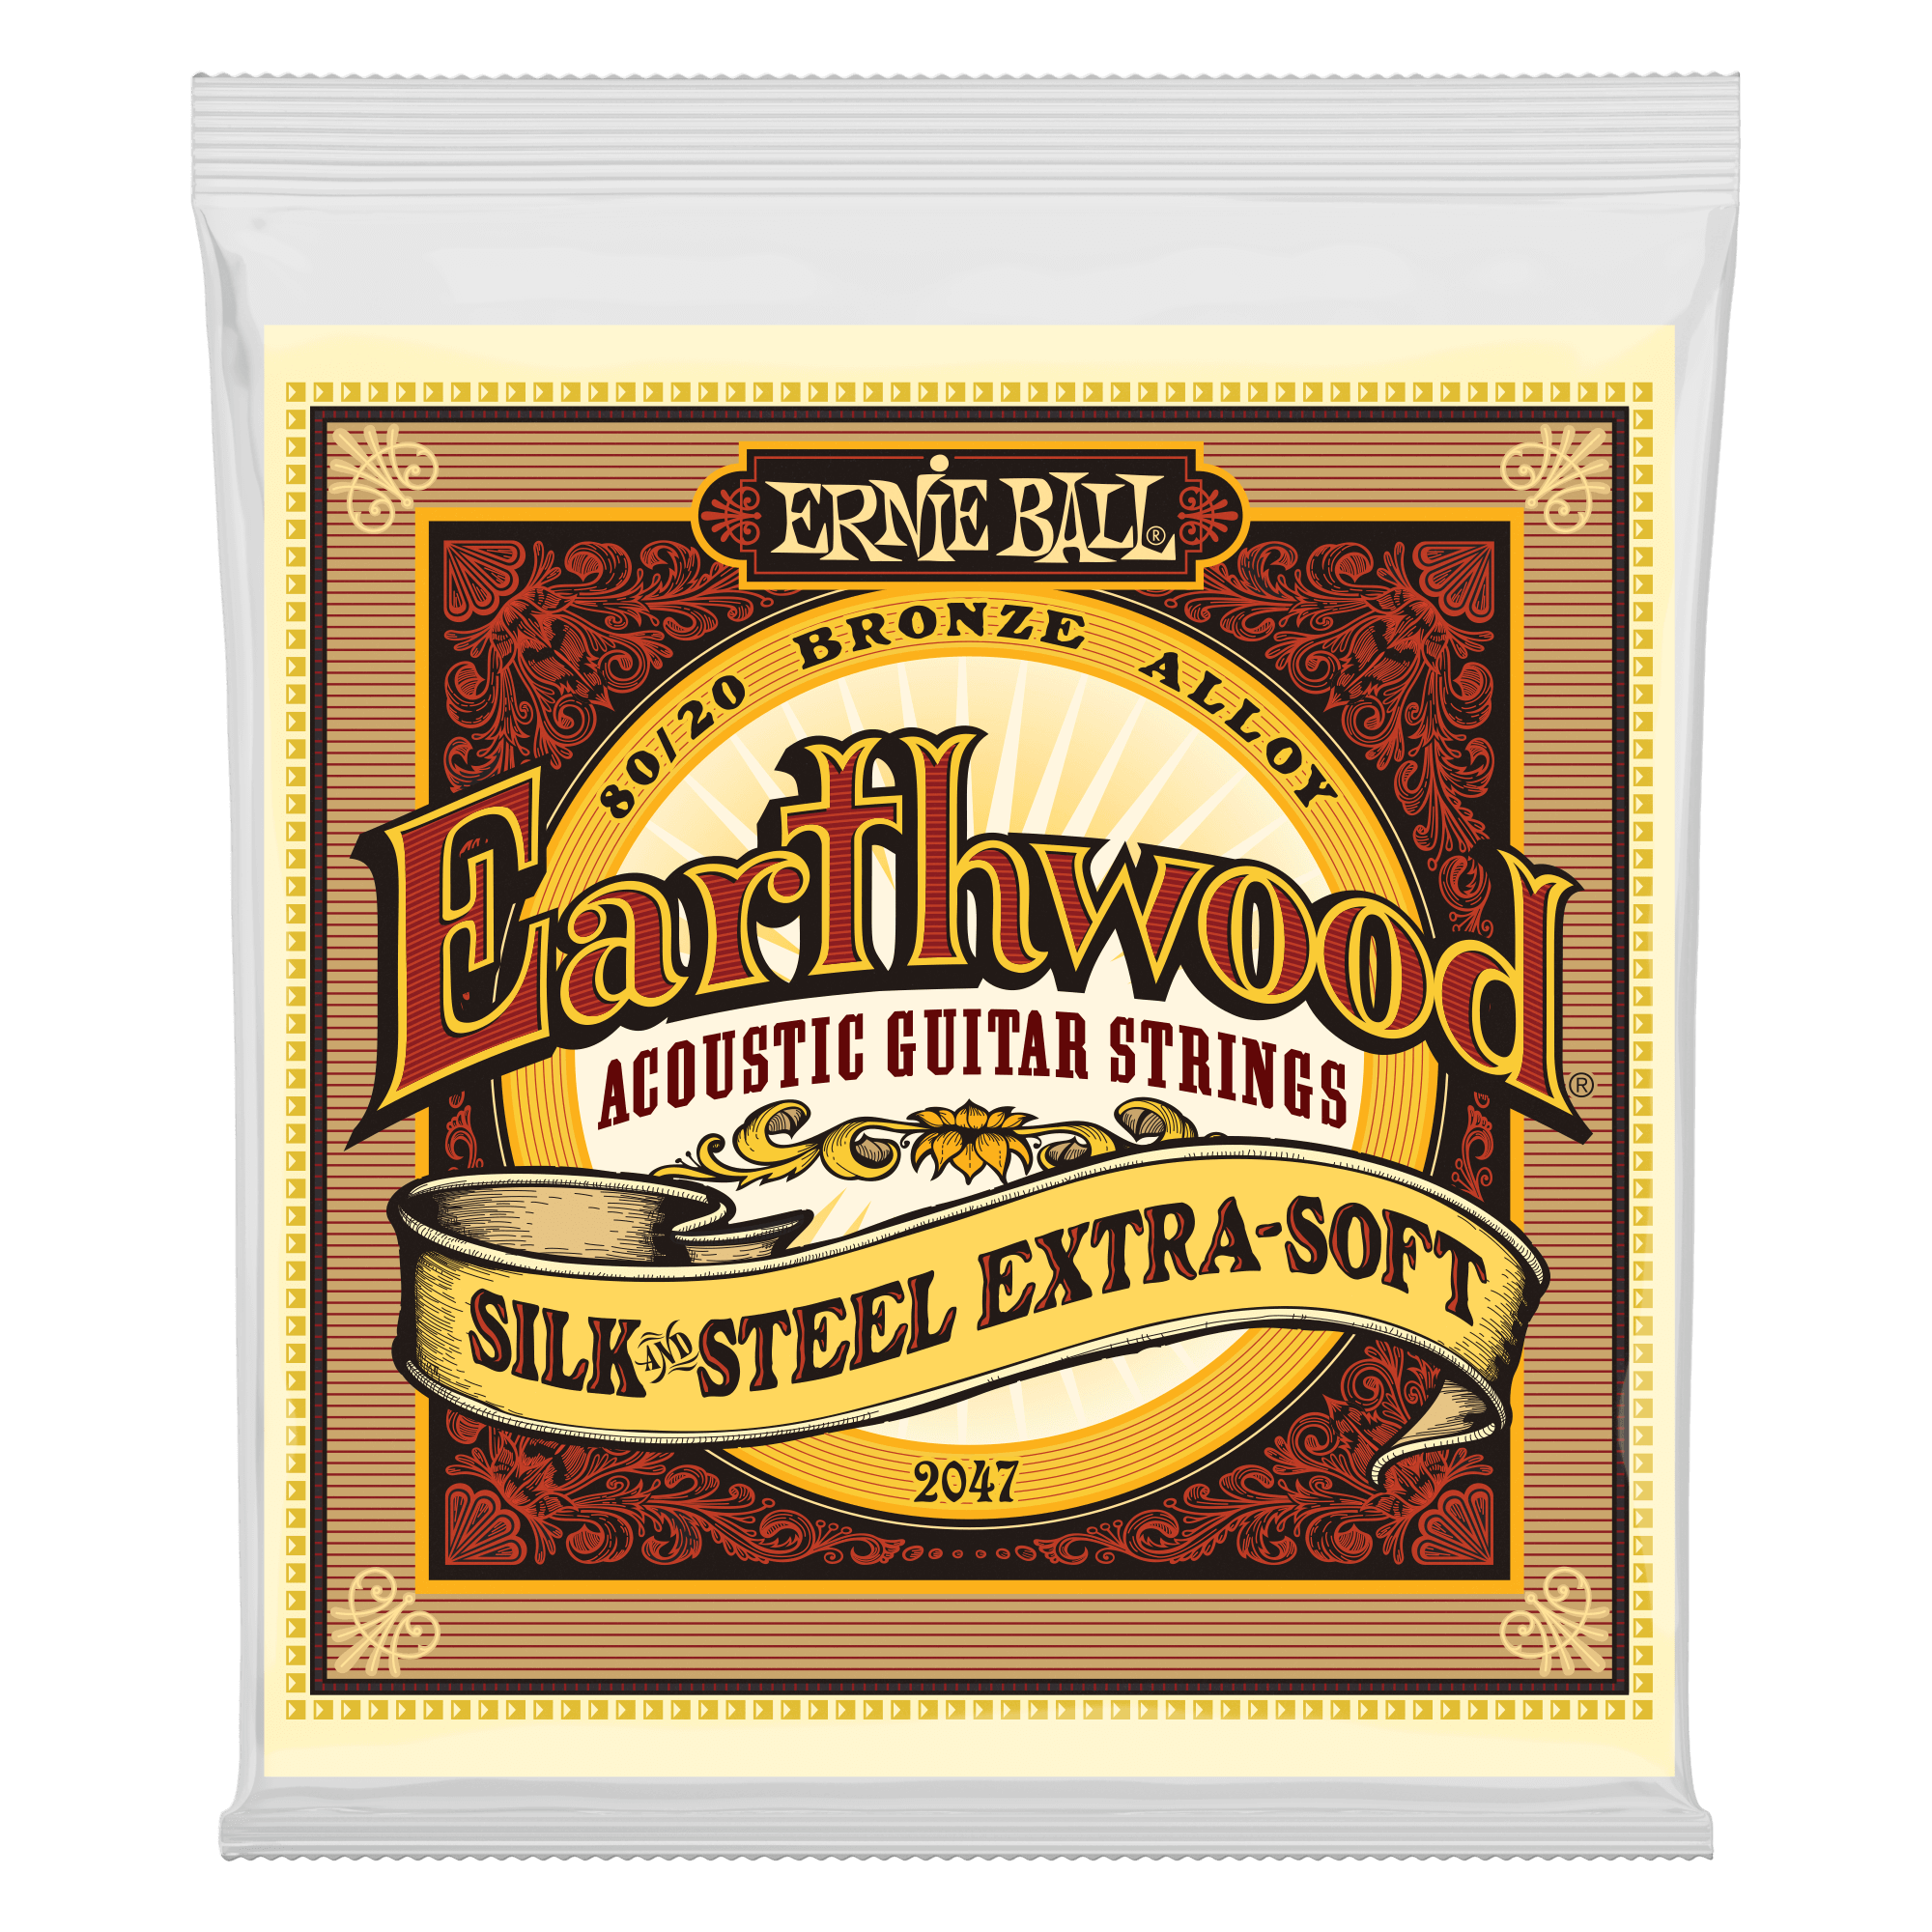 earthwood 80 20 bronze acoustic guitar strings ernie ball. Black Bedroom Furniture Sets. Home Design Ideas